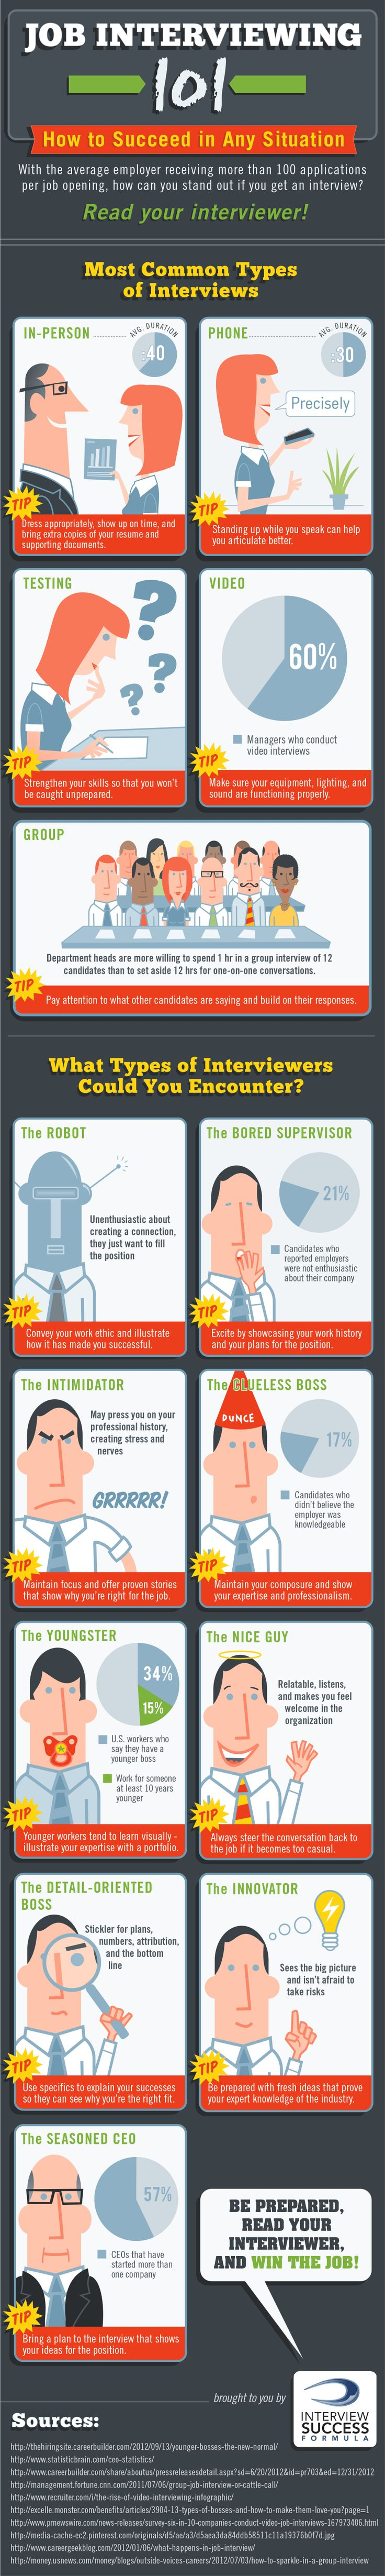 Interviewing soon? Check out this infographic to see how you should best approach different types of job interviews.